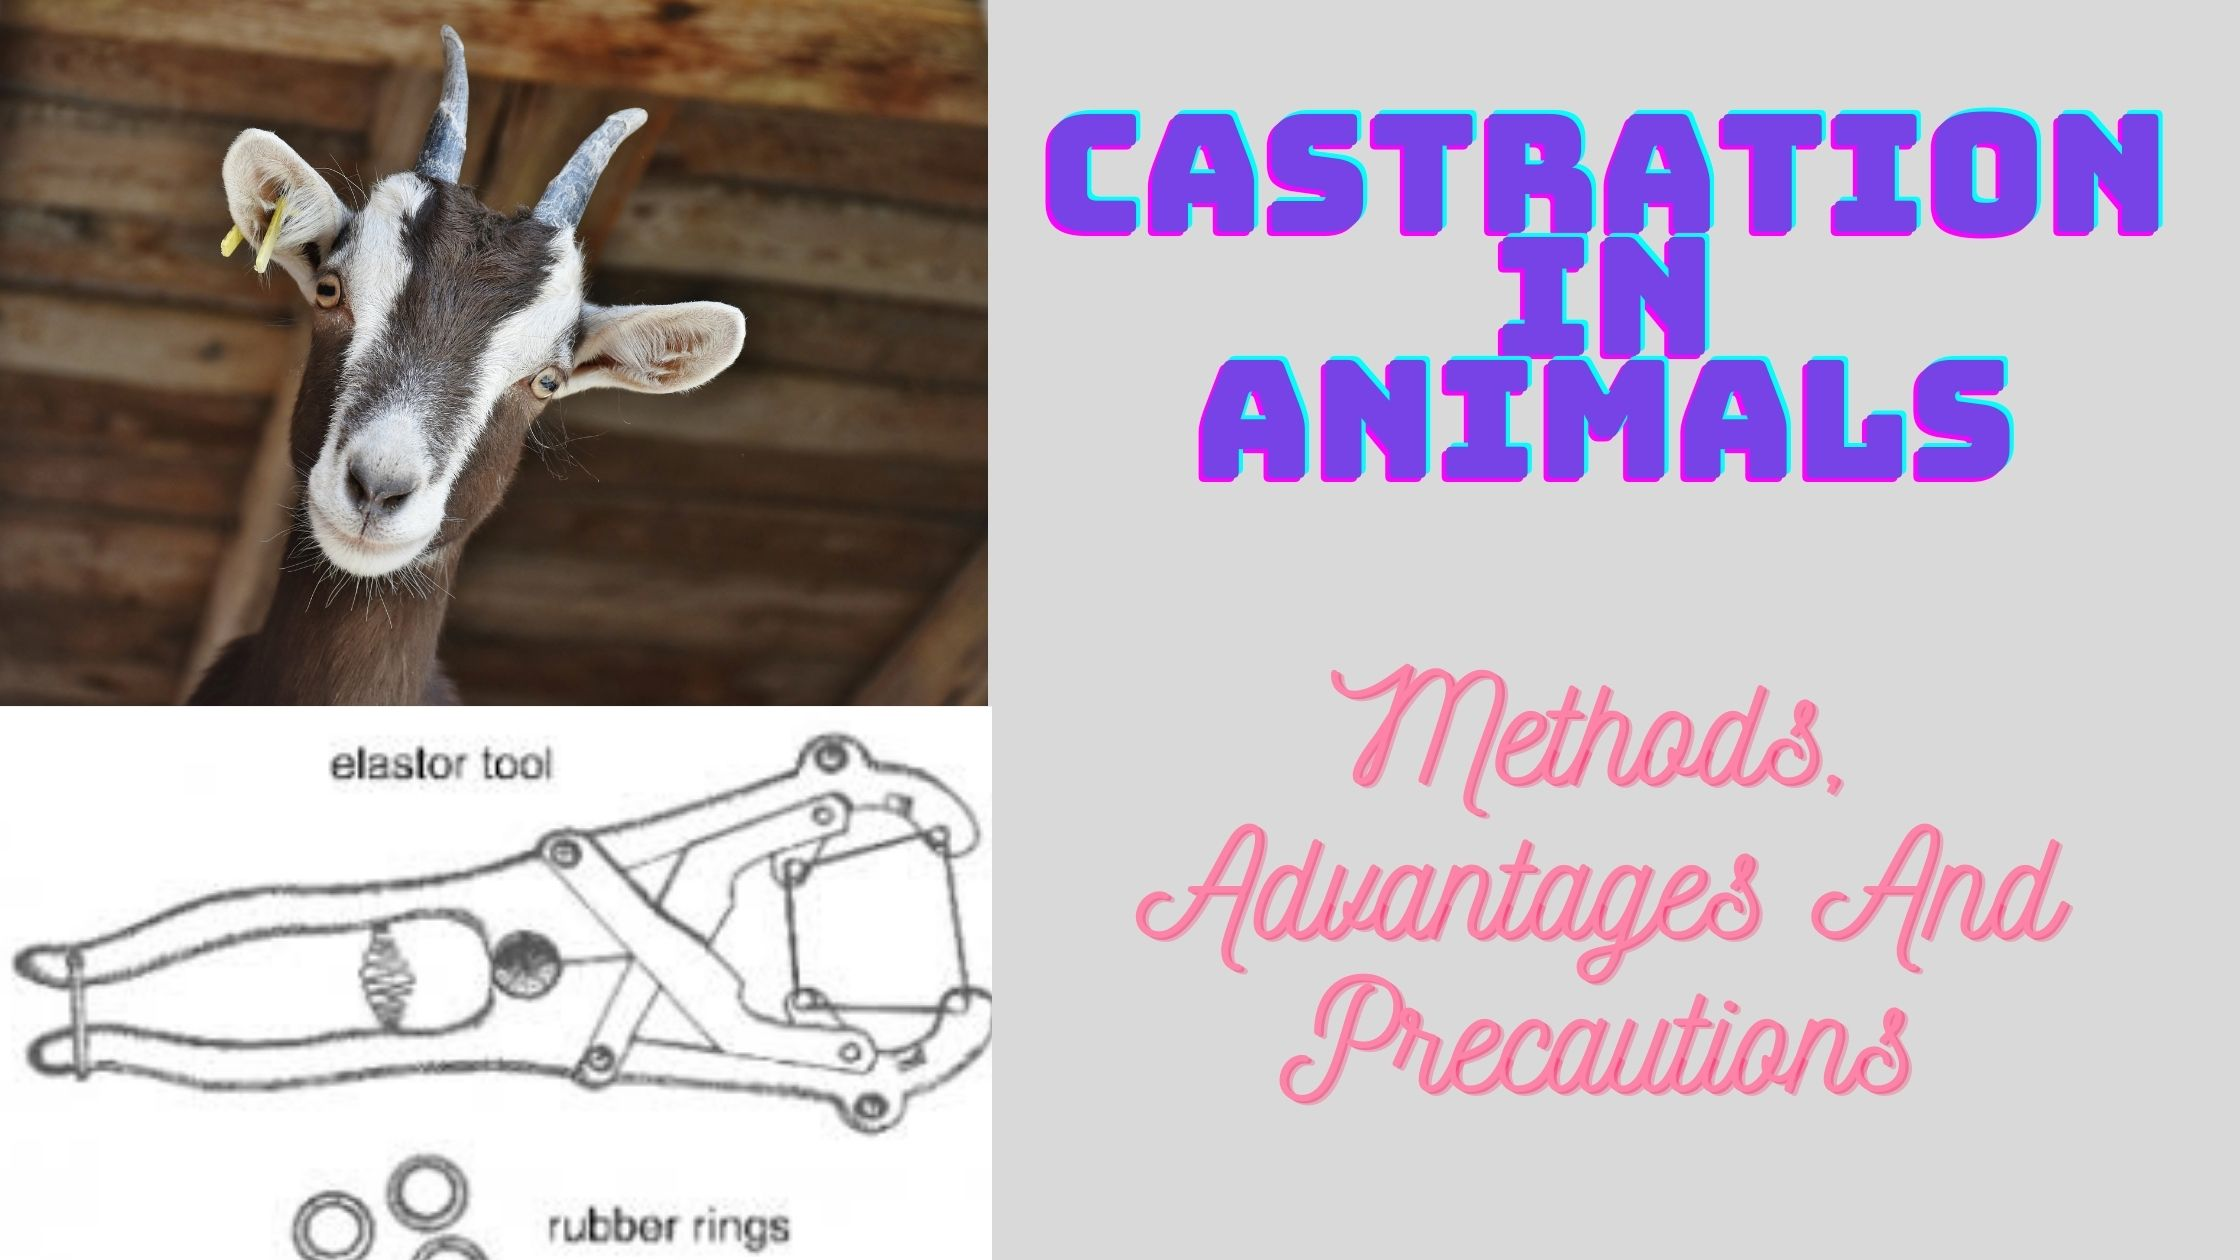 Castration in animals, Castration Methods, Reasons of Castration in animals